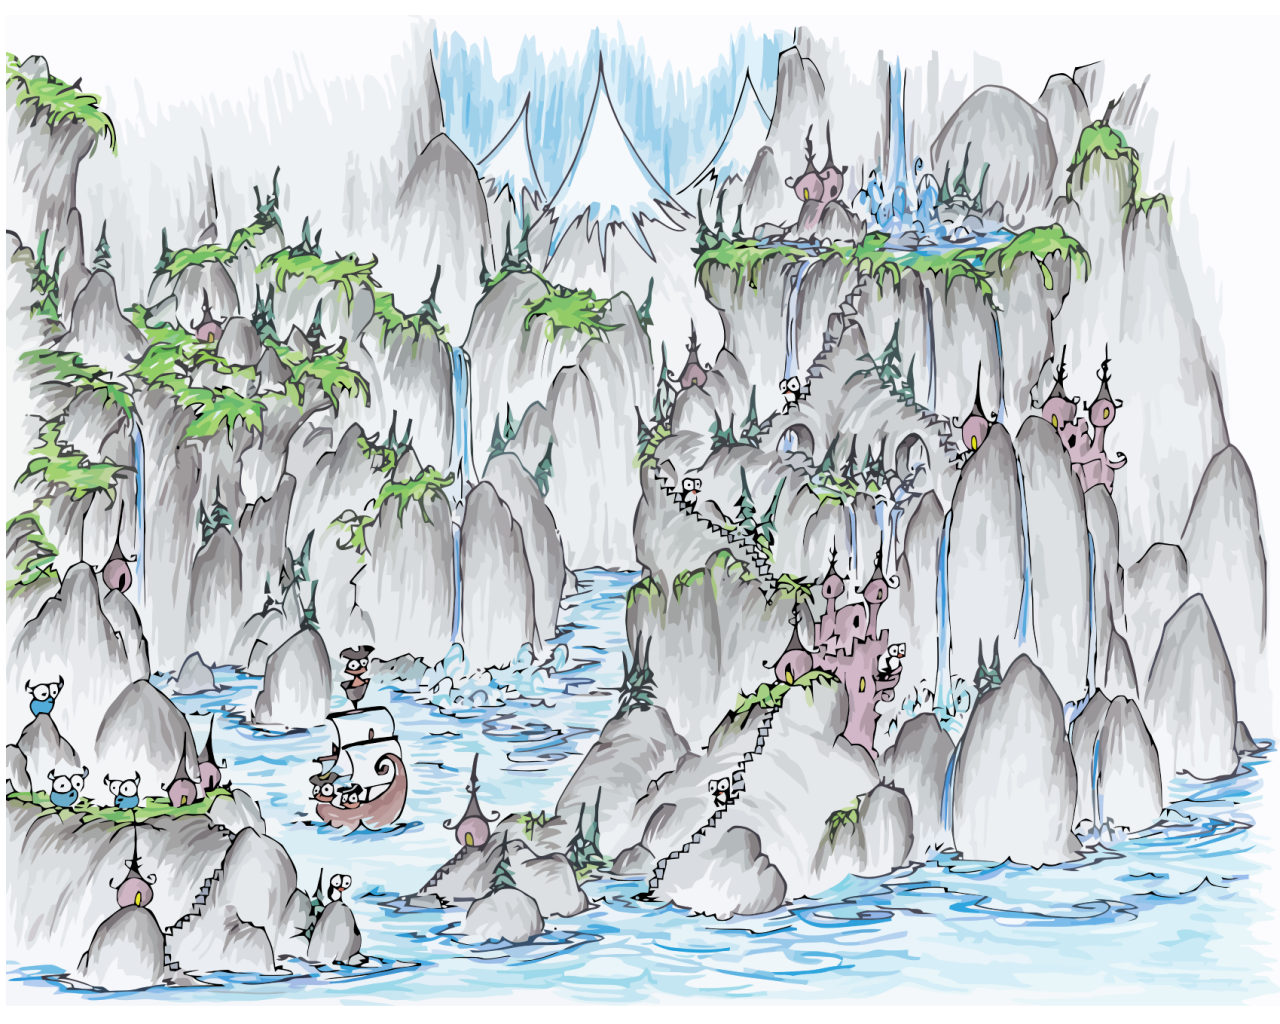 Wallpaper of a fjord full of waterfalls with monkeys sailing in a